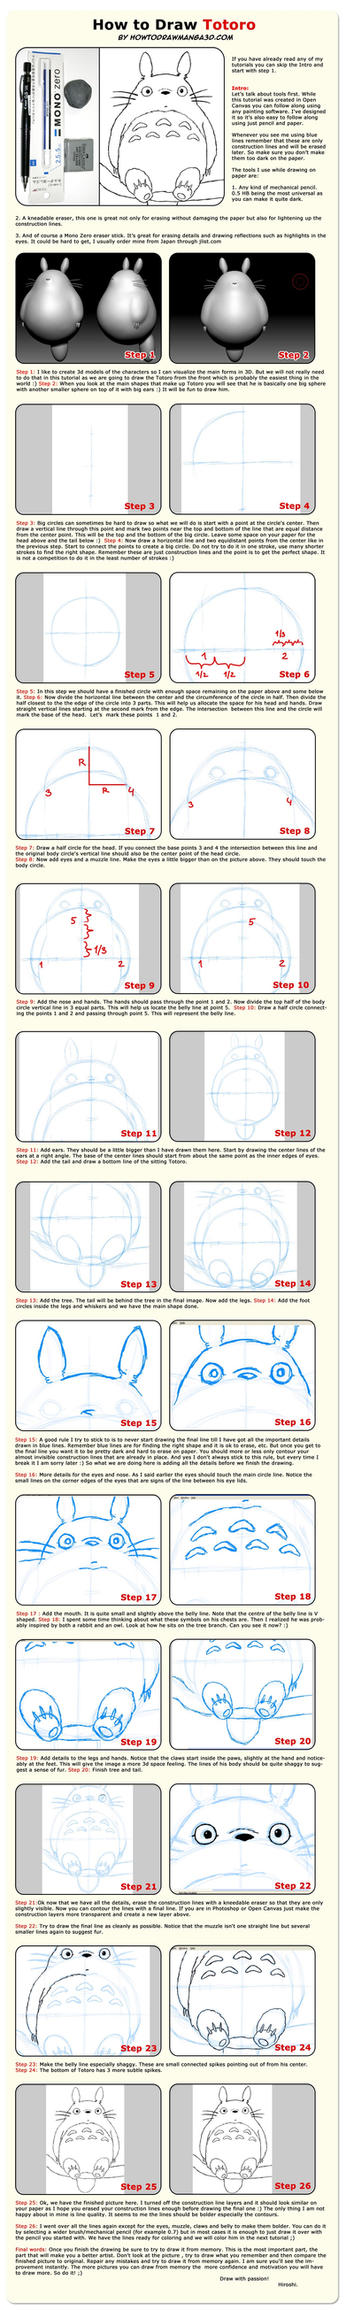 How To Draw Totoro by HowToDrawManga3D